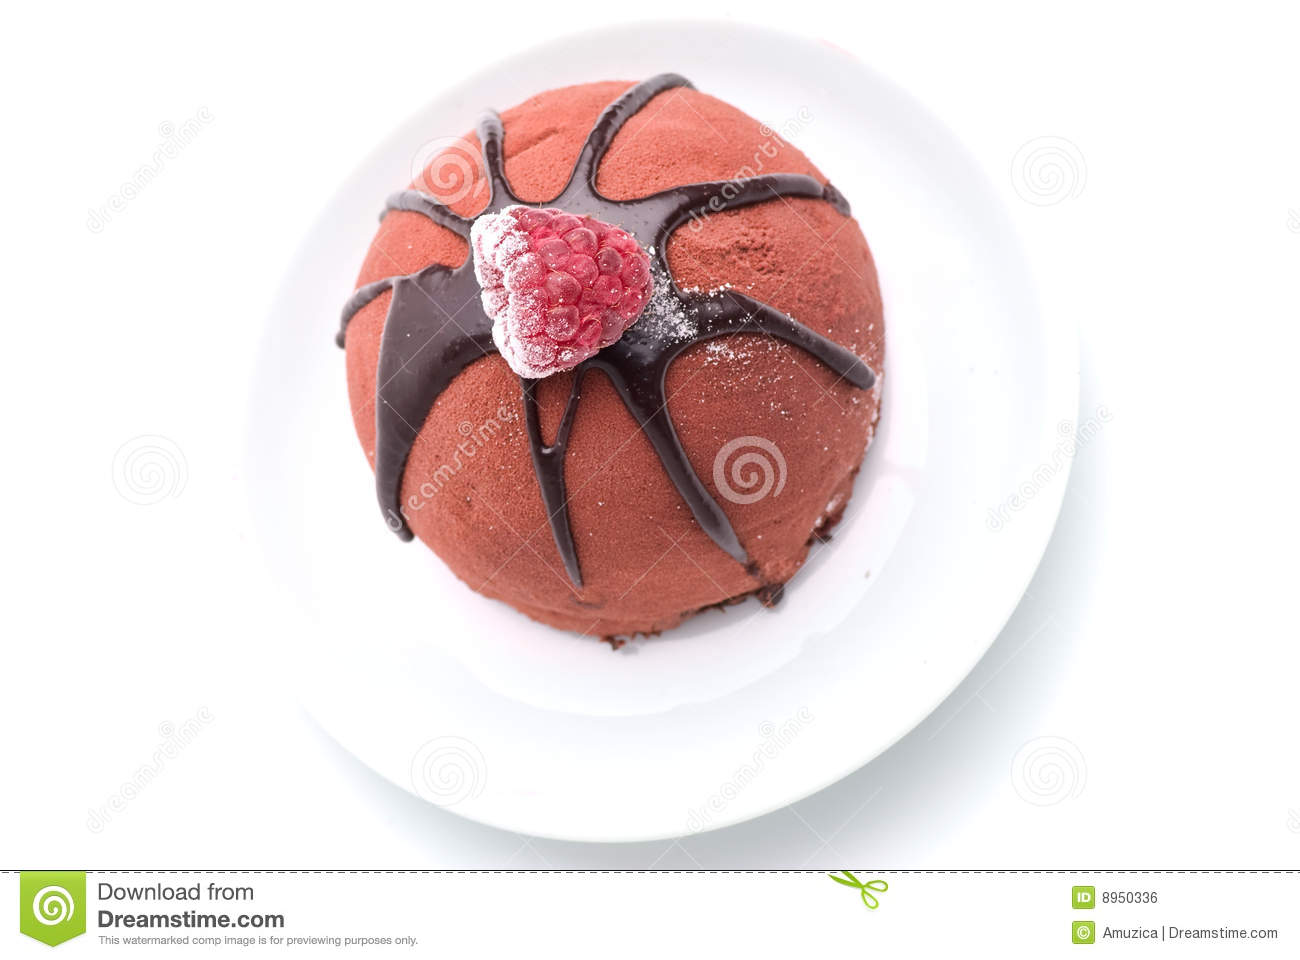 Chocolate Cake With Raspberry Topping Royalty Free Stock Image - Image ...